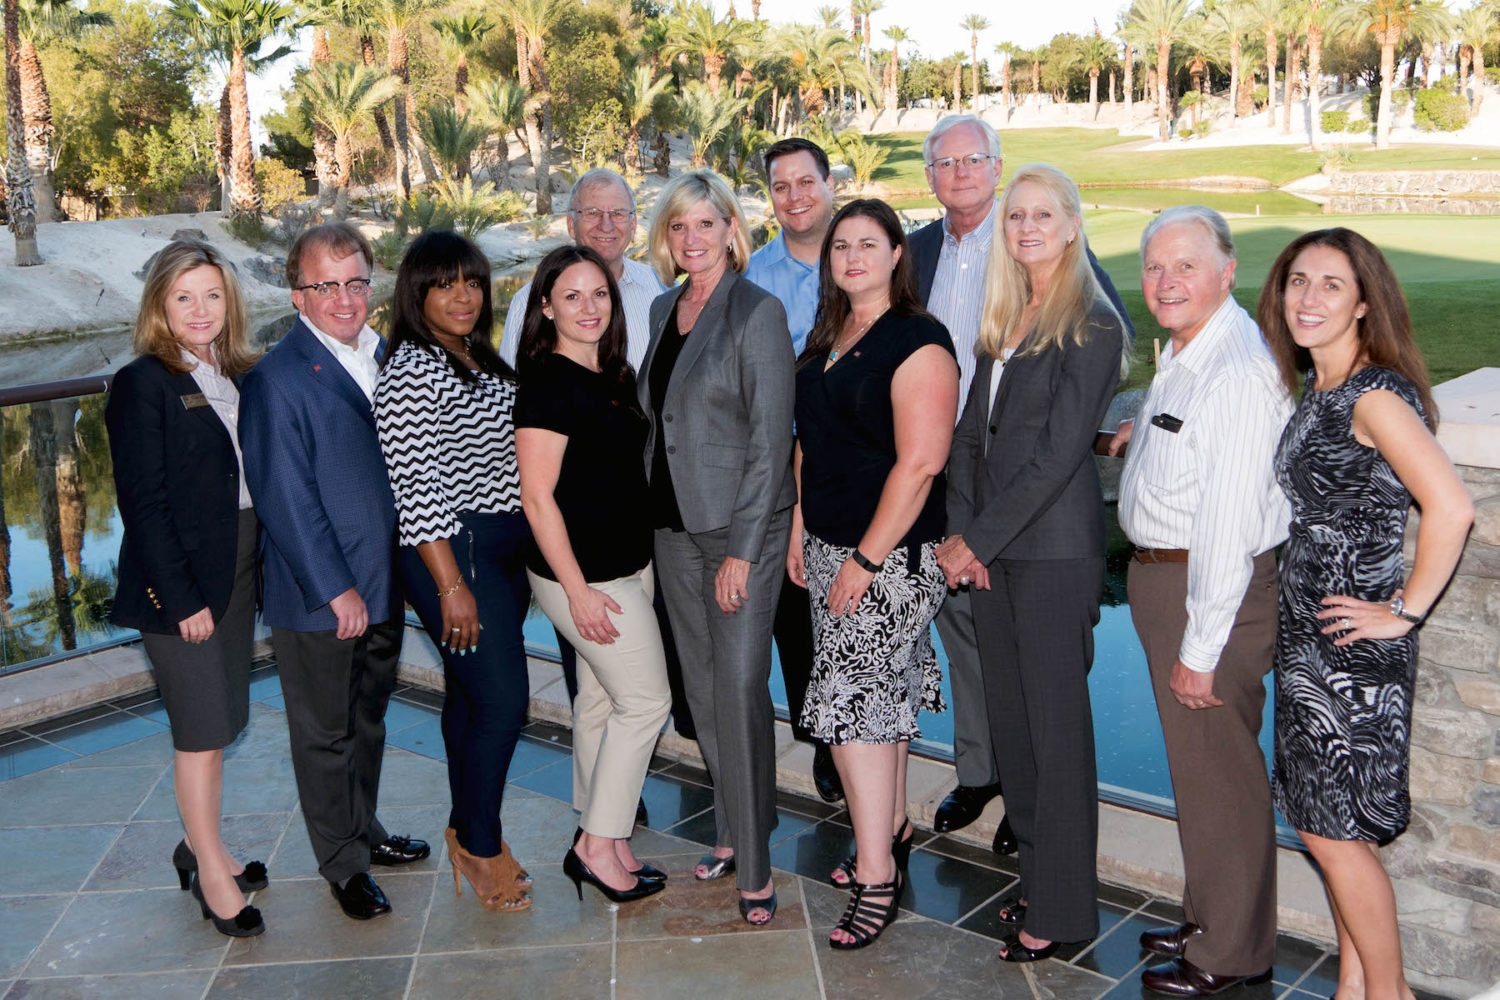 calv hosts mixer for commercial real estate professionals calv hosts 3 mixer for commercial real estate professionals nevada business magazine